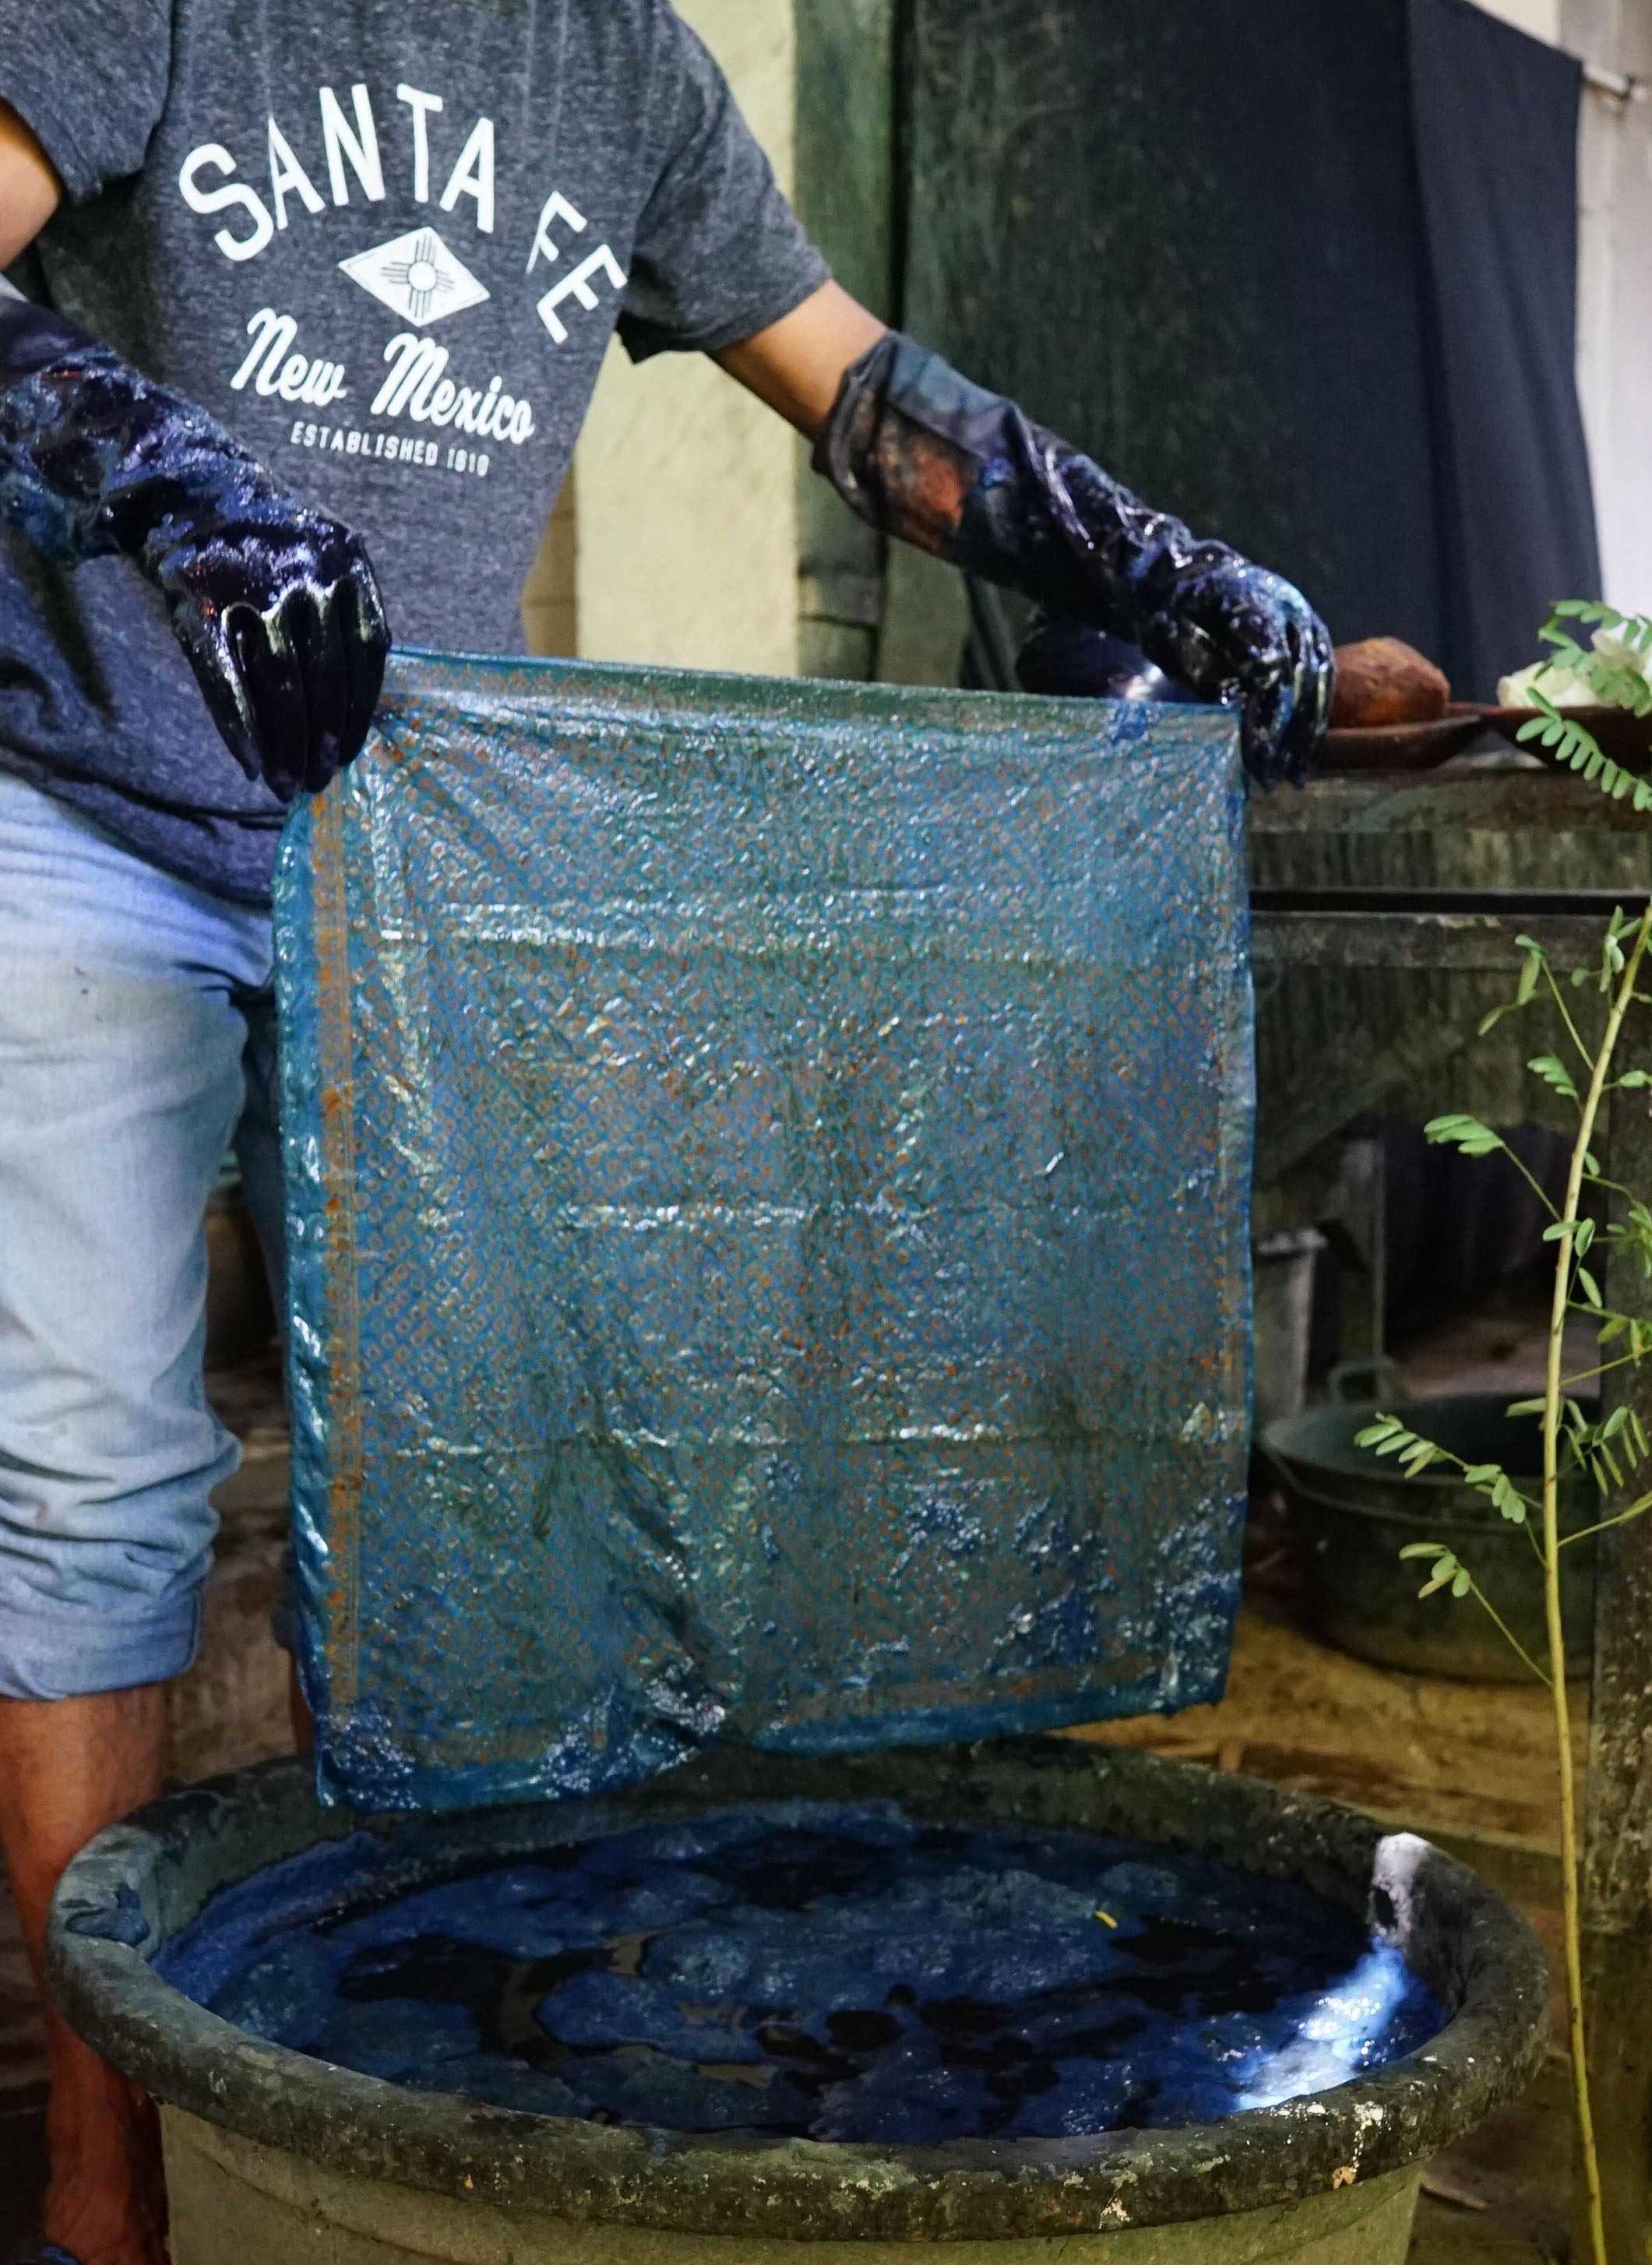 Artisan lifting a batik bandana out of a dying barrel with gloved hands.